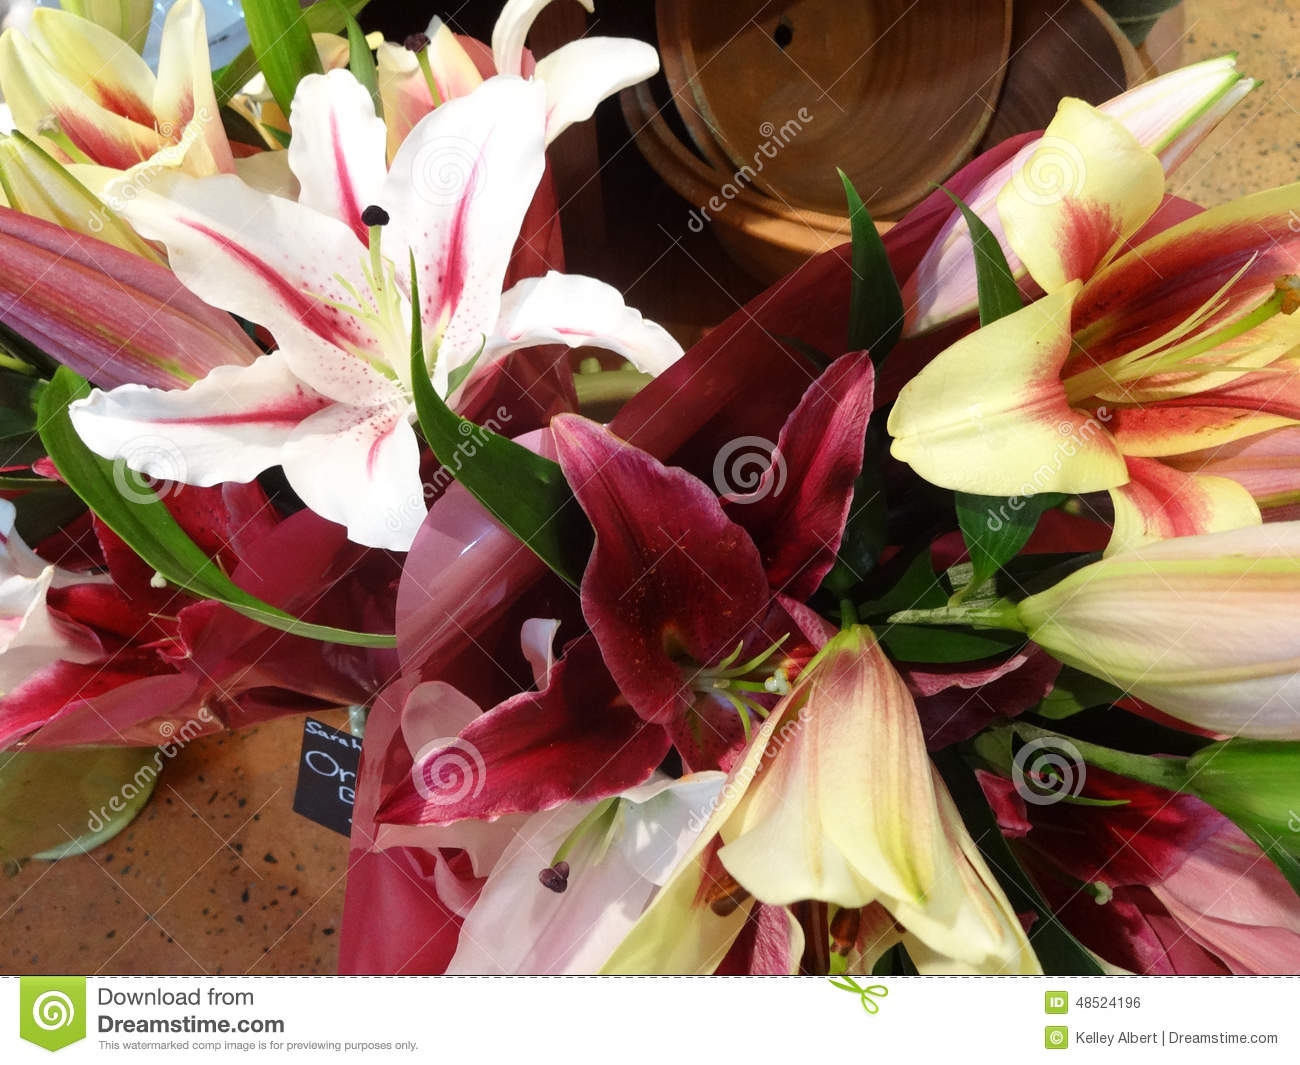 Fresh cut lily flowers for sale inside a floral shop stock photo royalty free stock photo izmirmasajfo Image collections